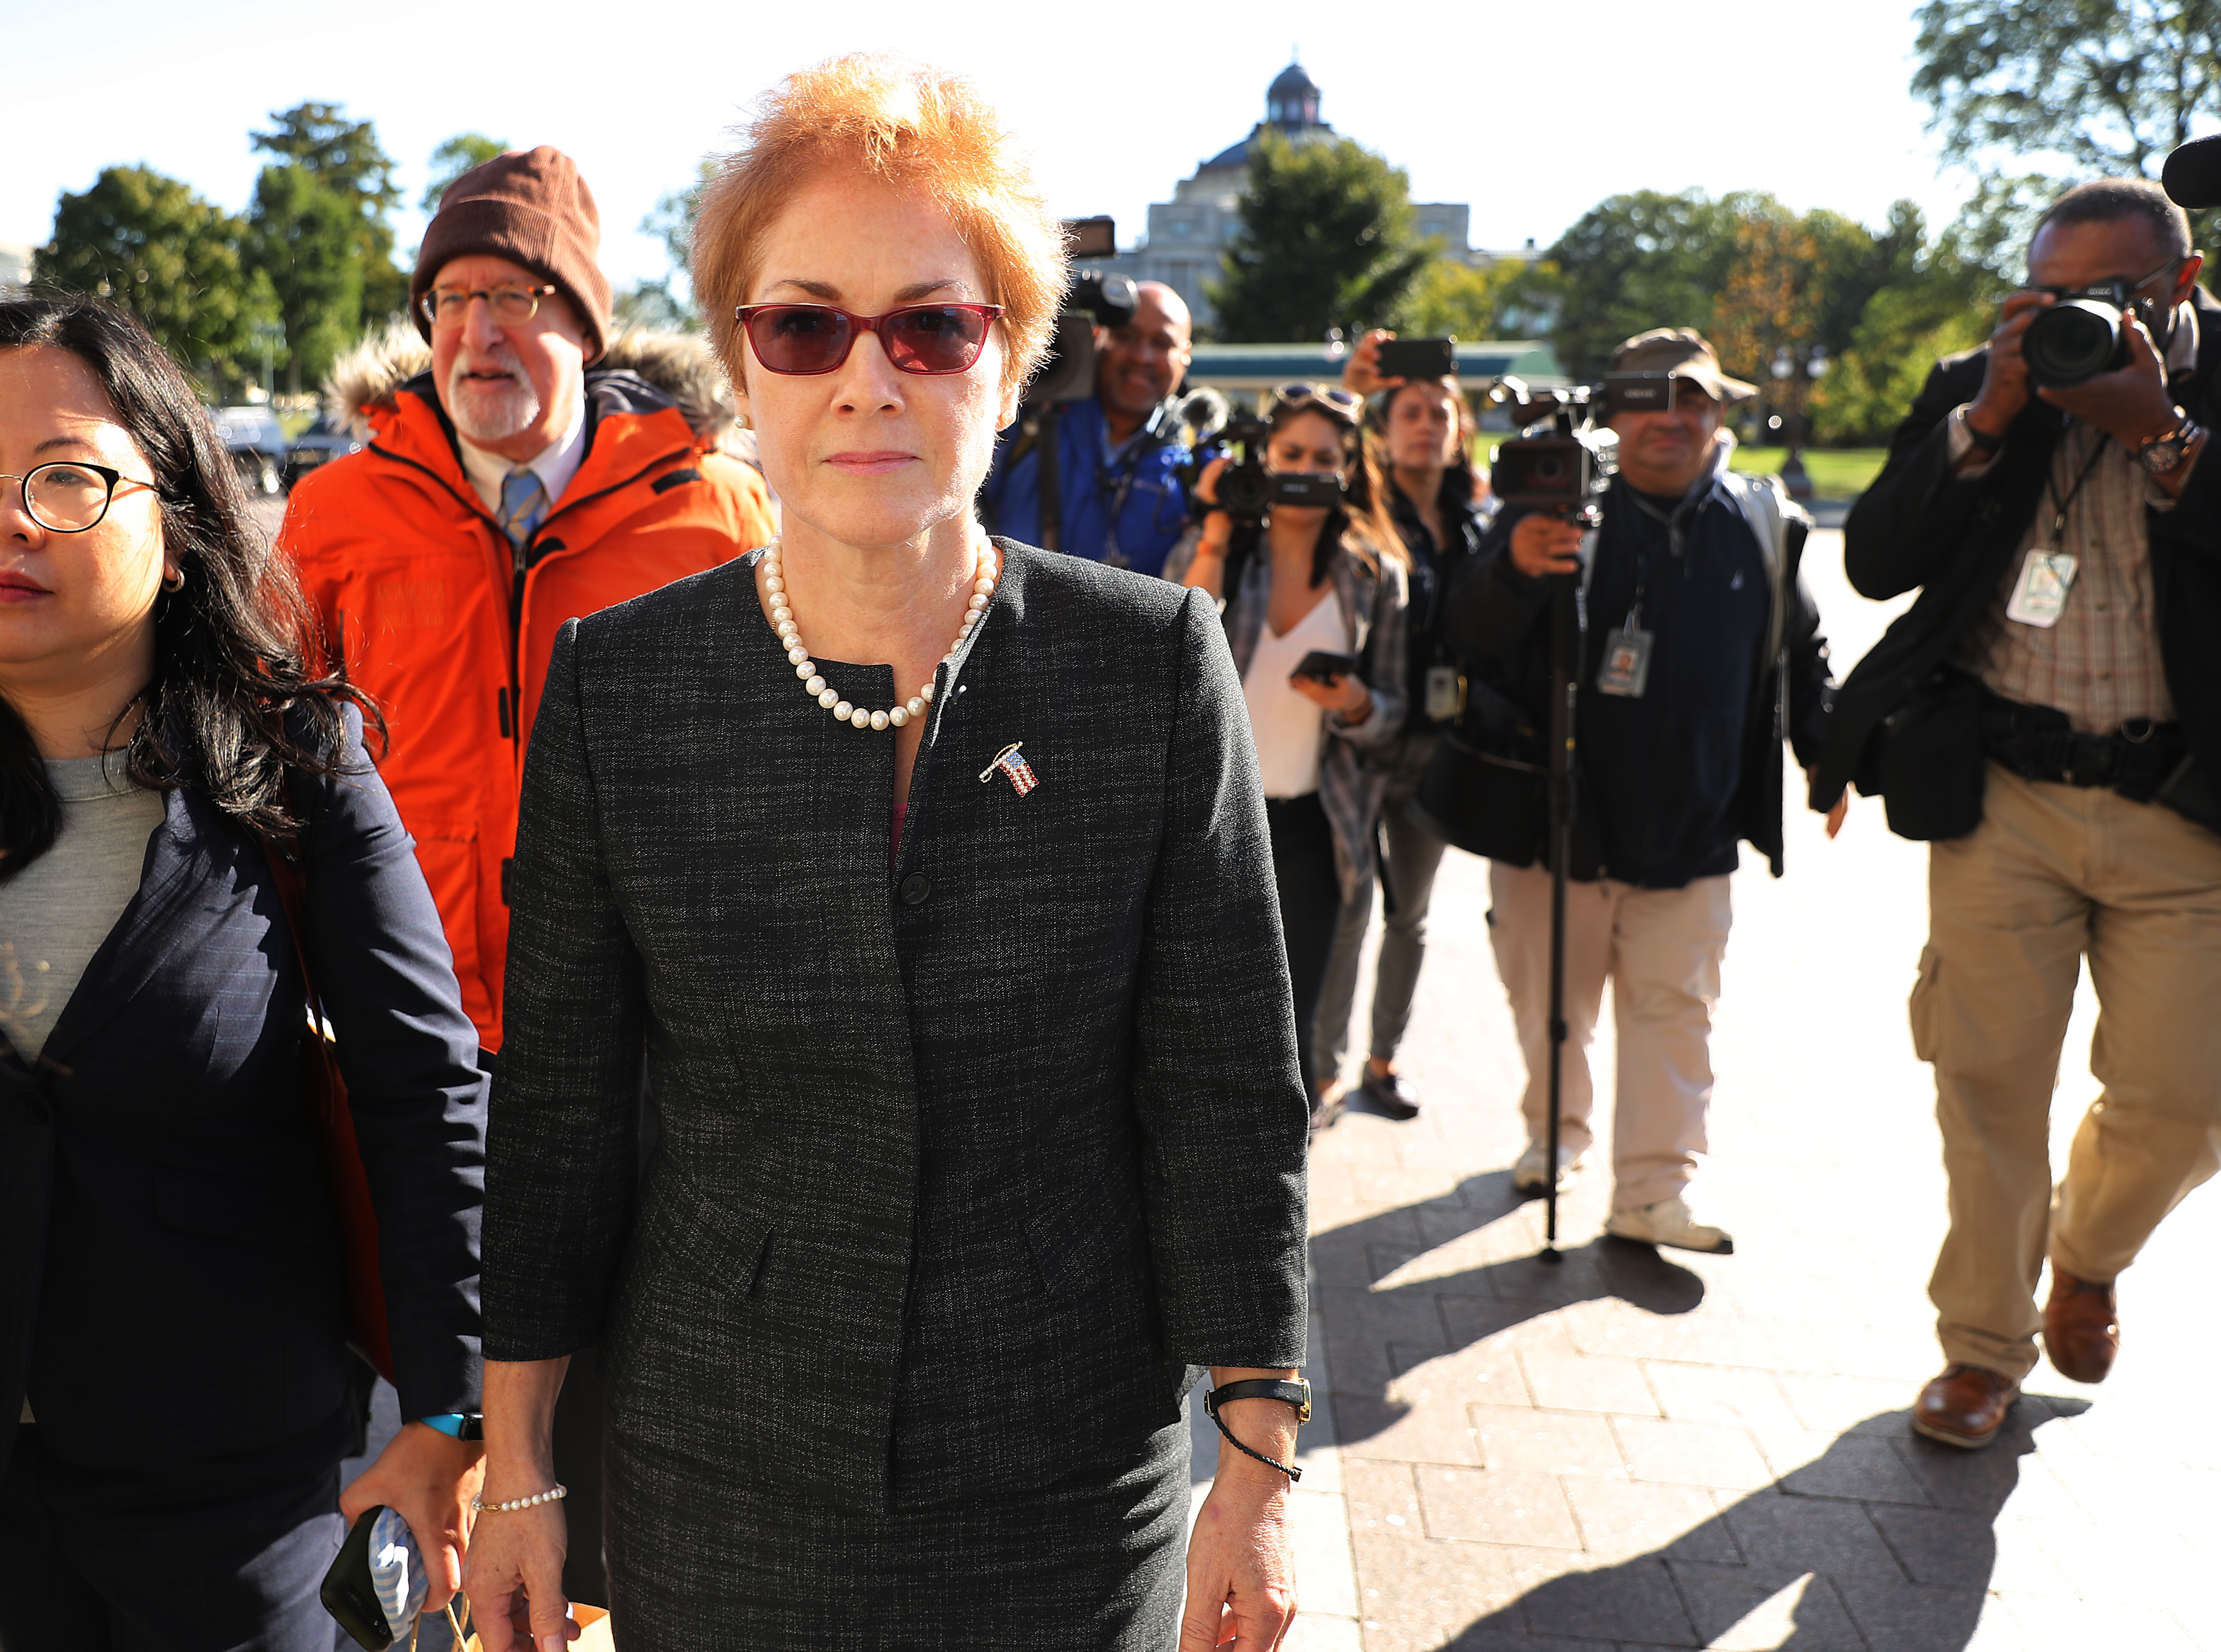 Former U.S. Ambassador to Ukraine Marie Yovanovitch (C) is surrounded by lawyers, aides and journalists as she arrives at the U.S. Capitol October 11, 2019 in Washington, DC. (Chip Somodevilla/Getty Images)